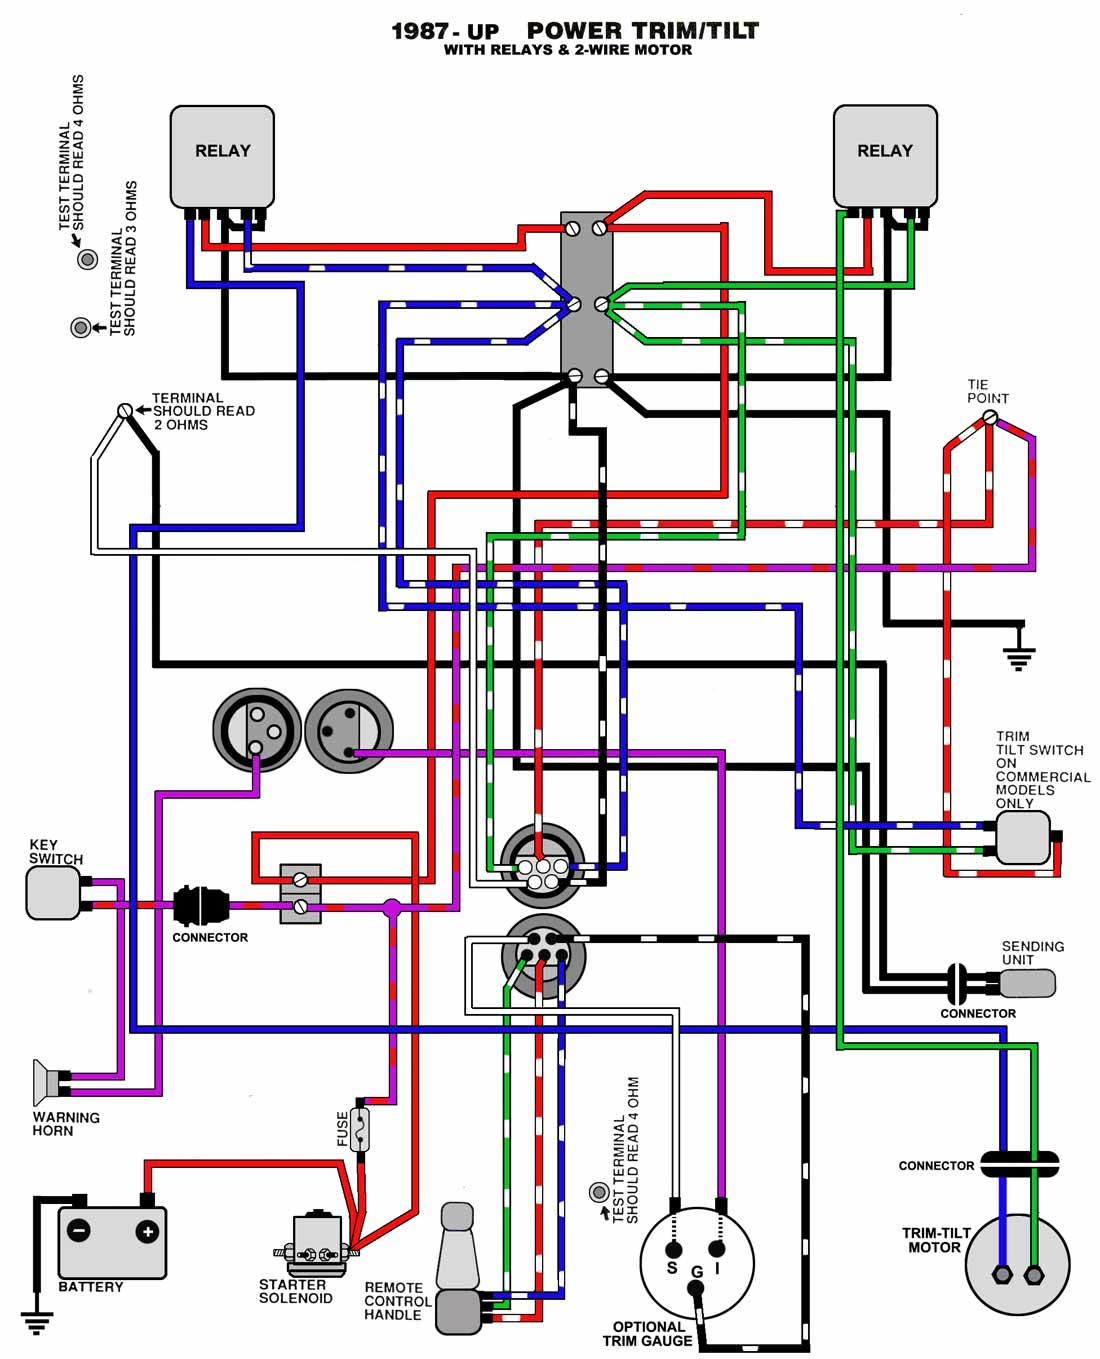 TnT_87_UP mastertech marine evinrude johnson outboard wiring diagrams evinrude key switch wiring diagram at bakdesigns.co